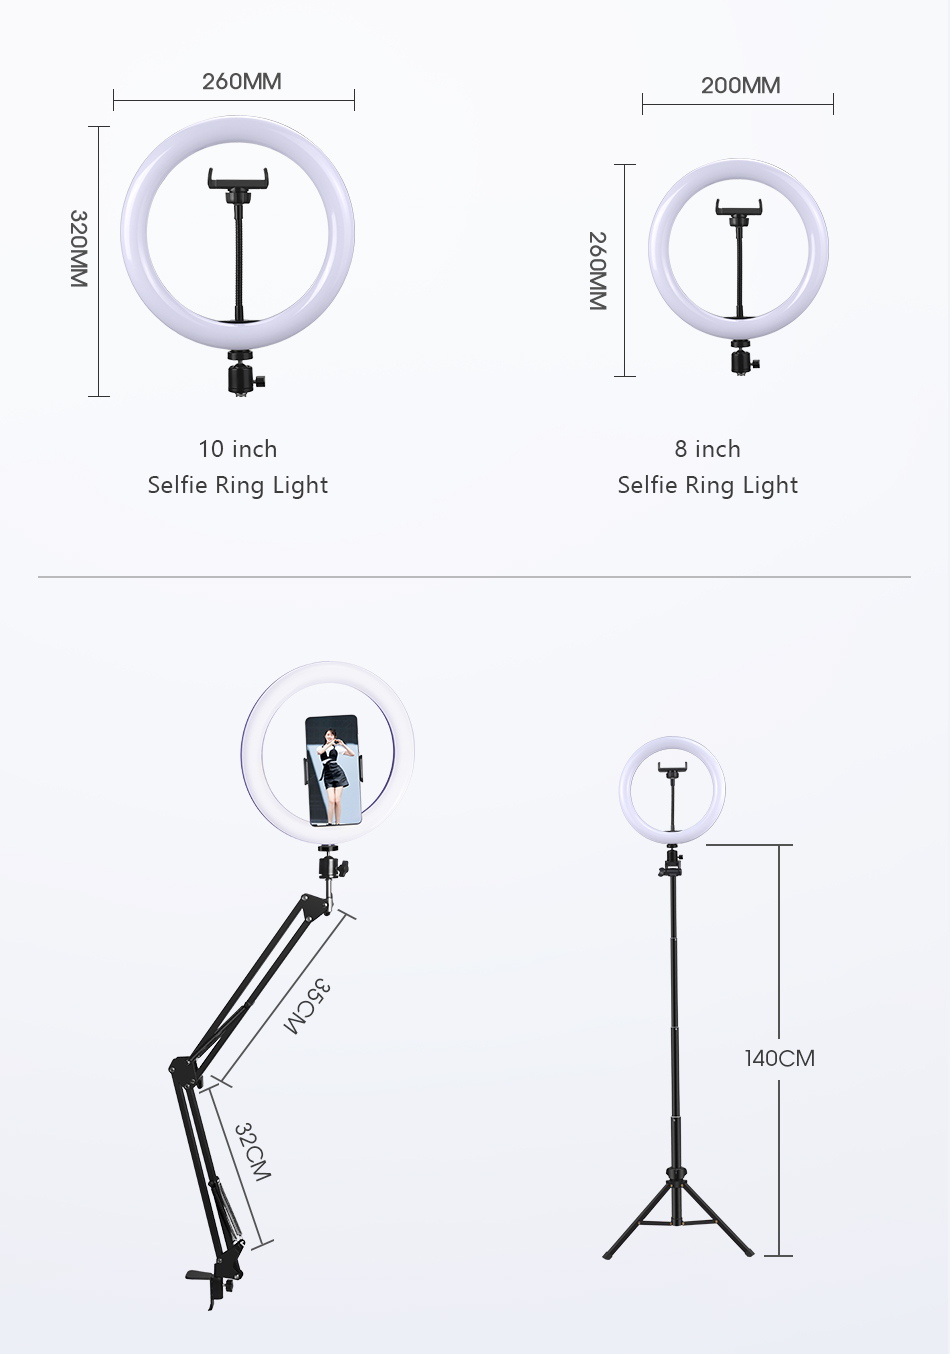 Selfie Ring Light Photography Led Rim Of Lamp With Mobile Holder Support Tripod Stand Ringlight For Live Video Streaming